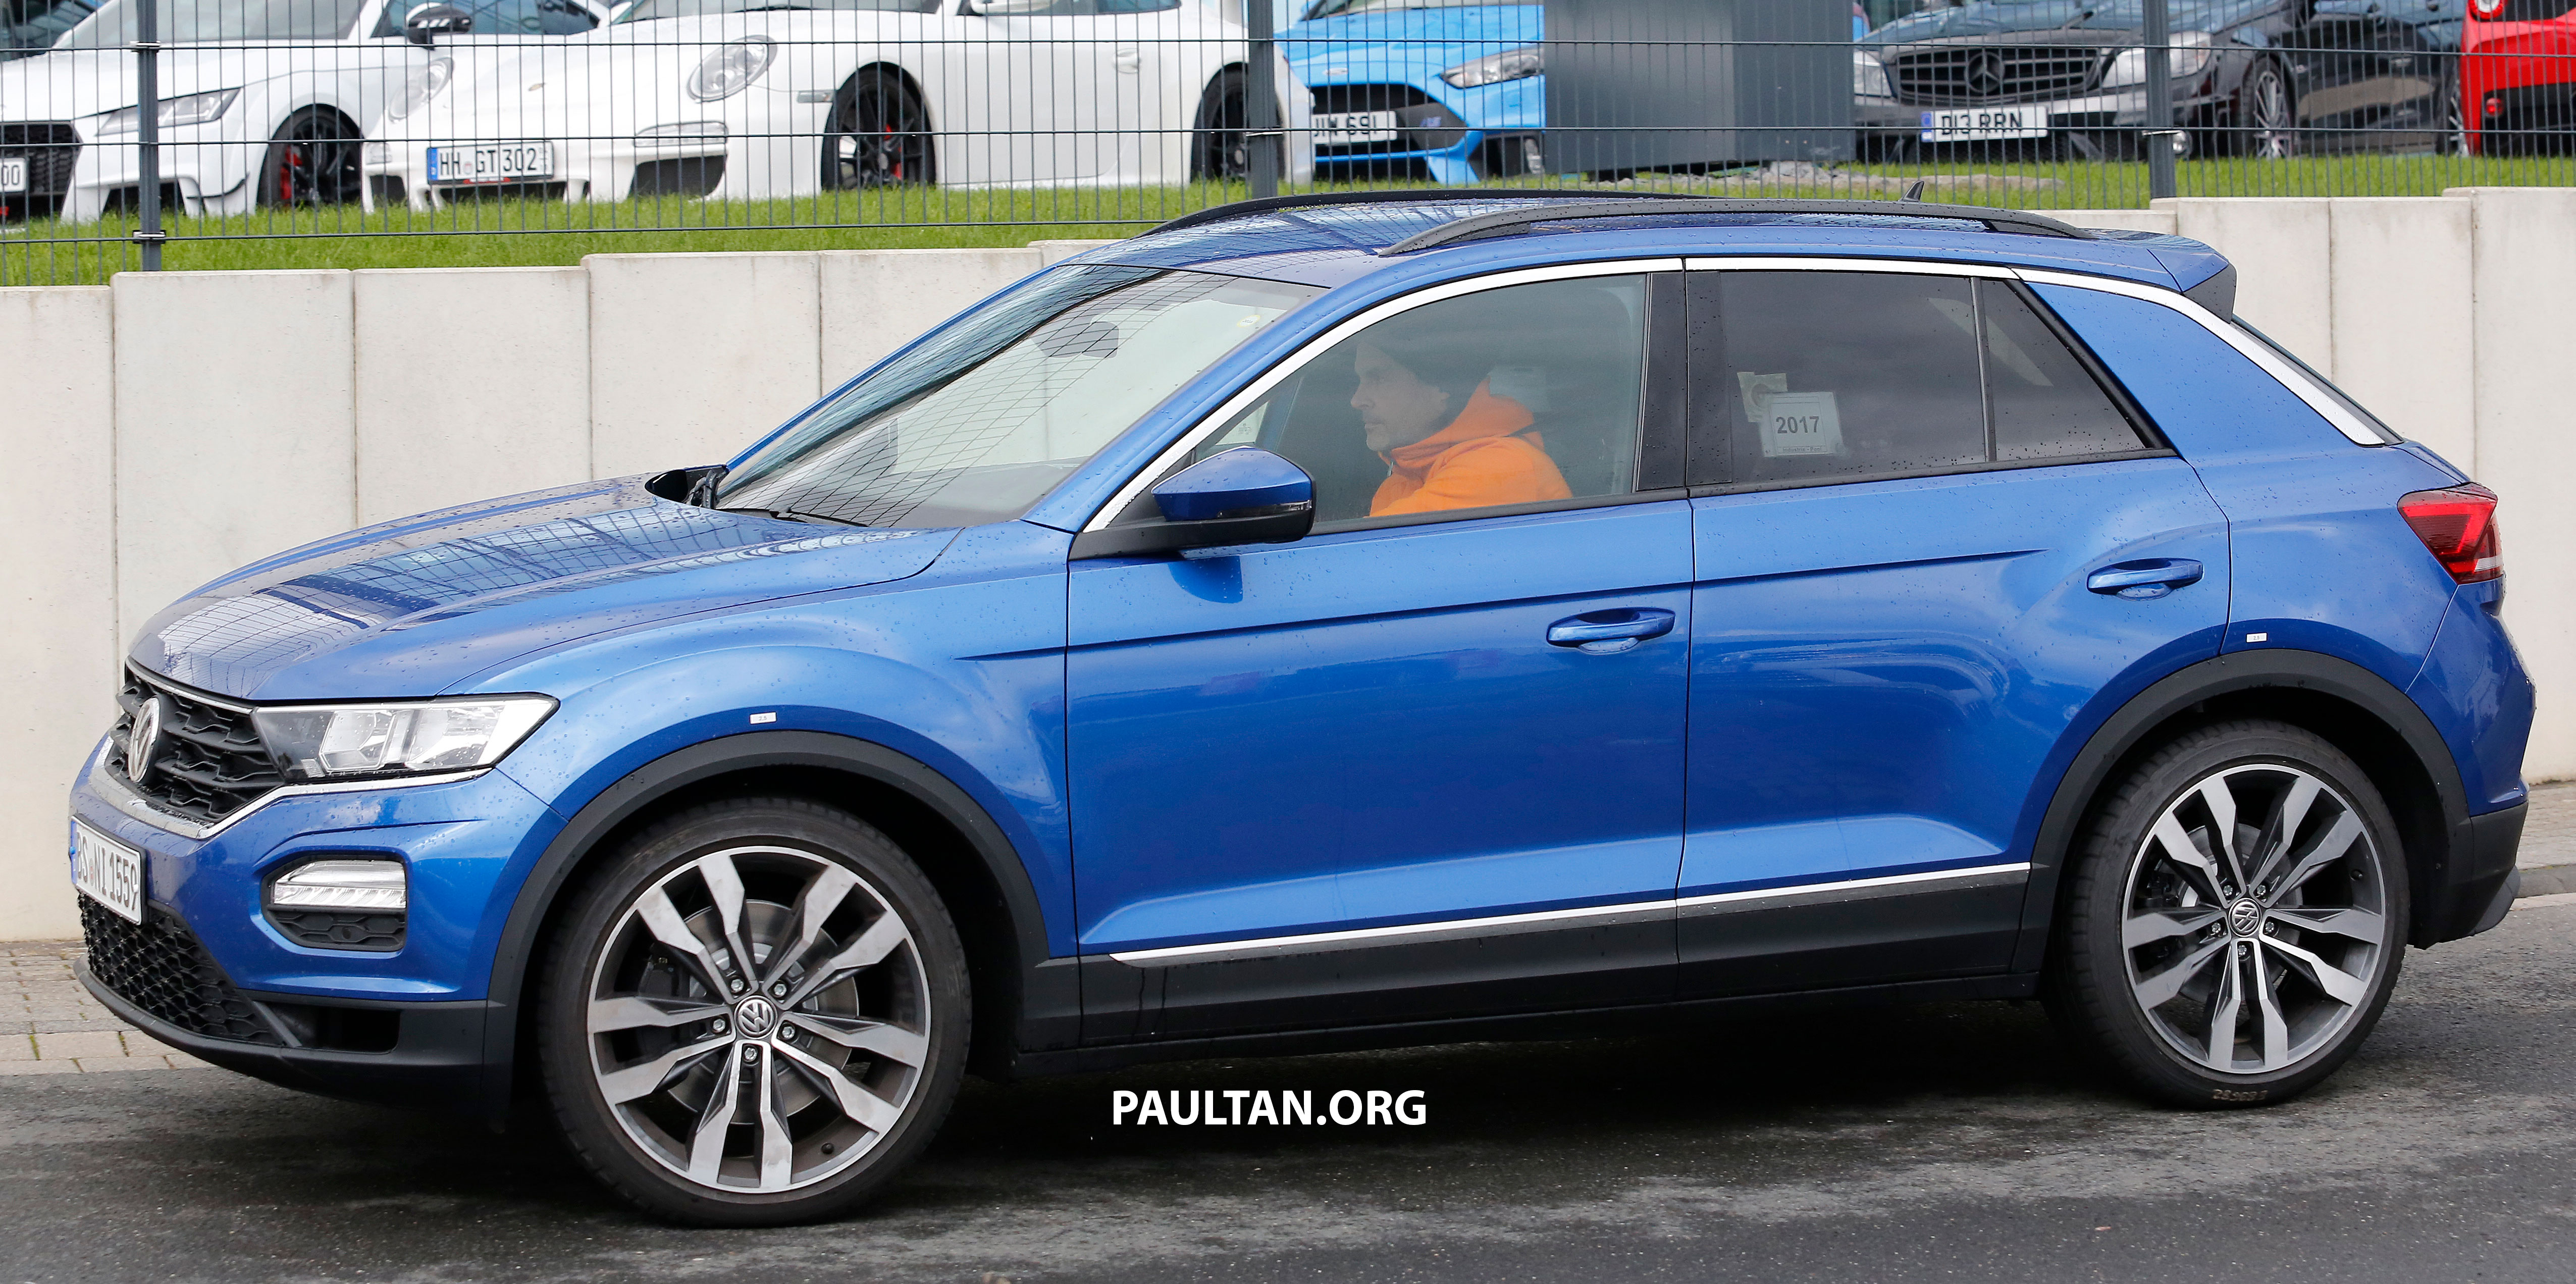 spyshots volkswagen t roc r to get golf r grunt paul tan image 716797. Black Bedroom Furniture Sets. Home Design Ideas